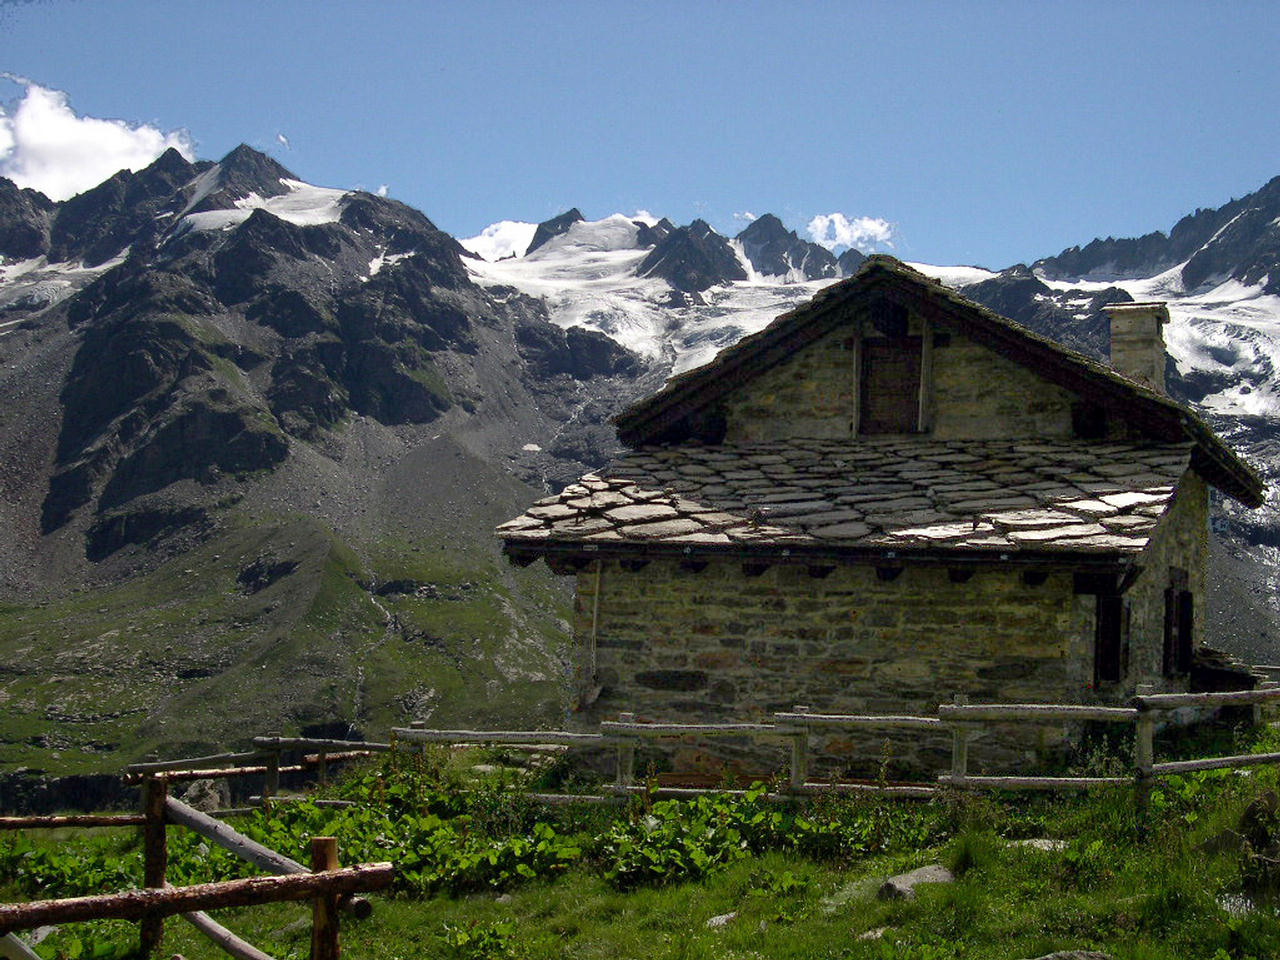 Cute Wallpapers Of Love Hearts Tour Guide To Gran Paradiso National Park Graian Alps